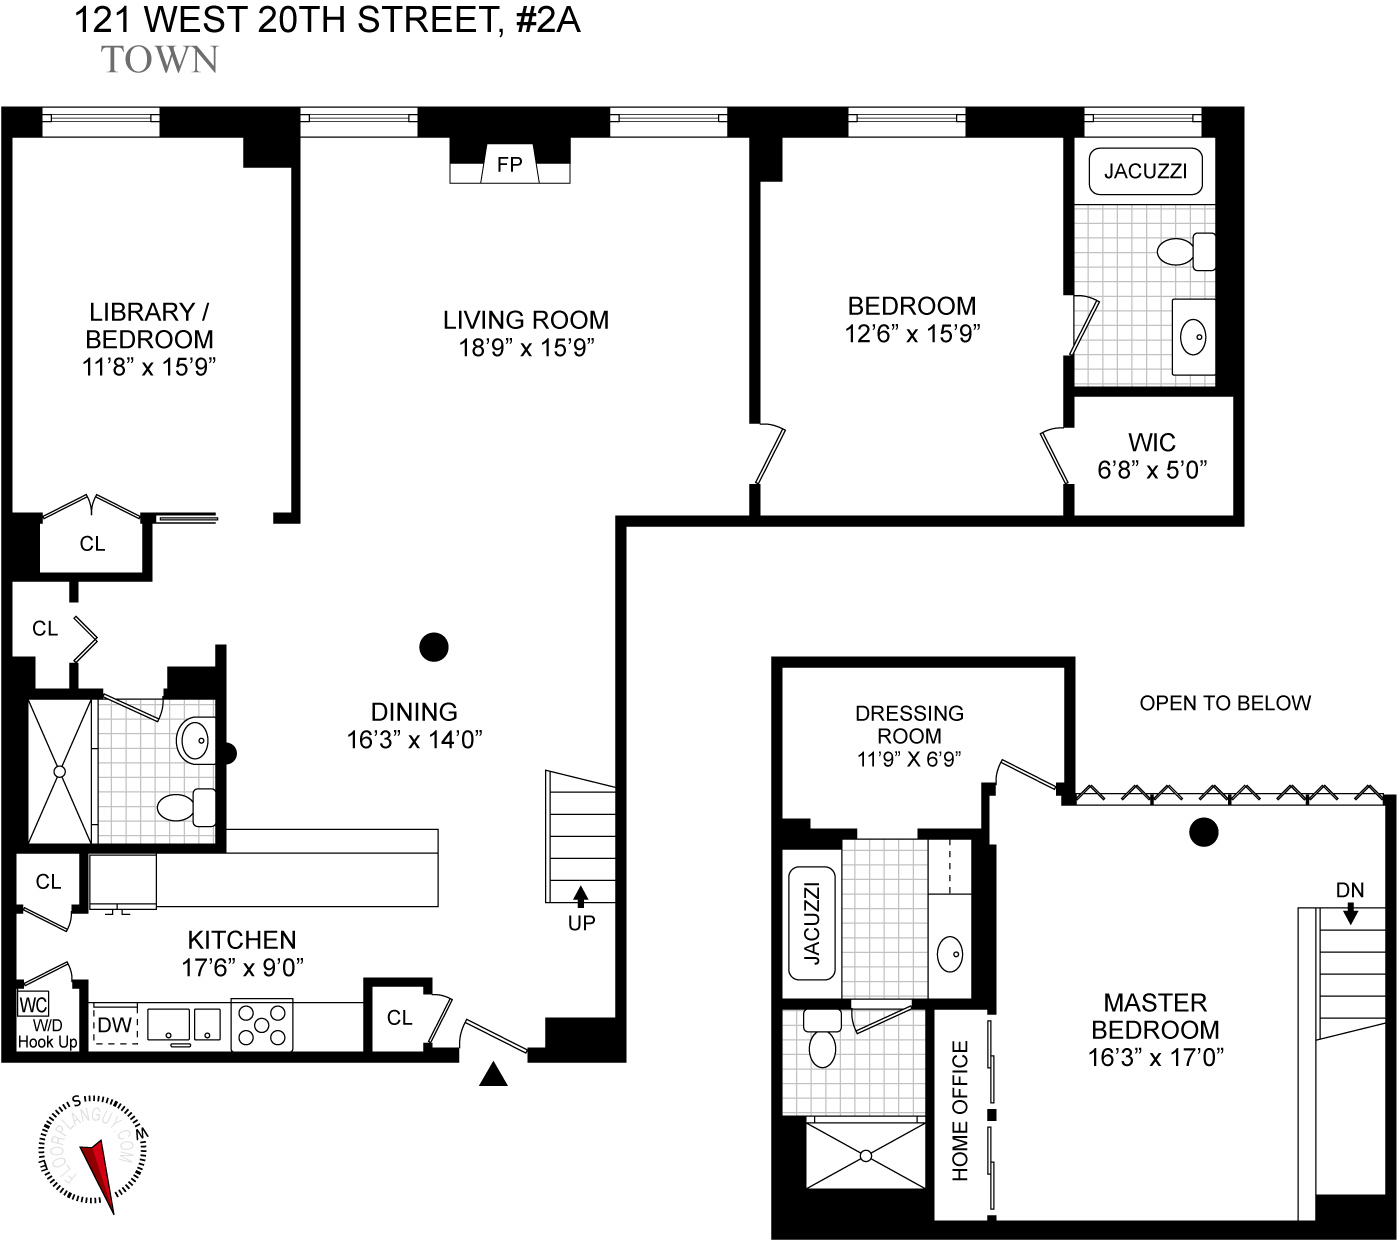 Unit 2a 121 west 20th street floor plan new york for Home plans com